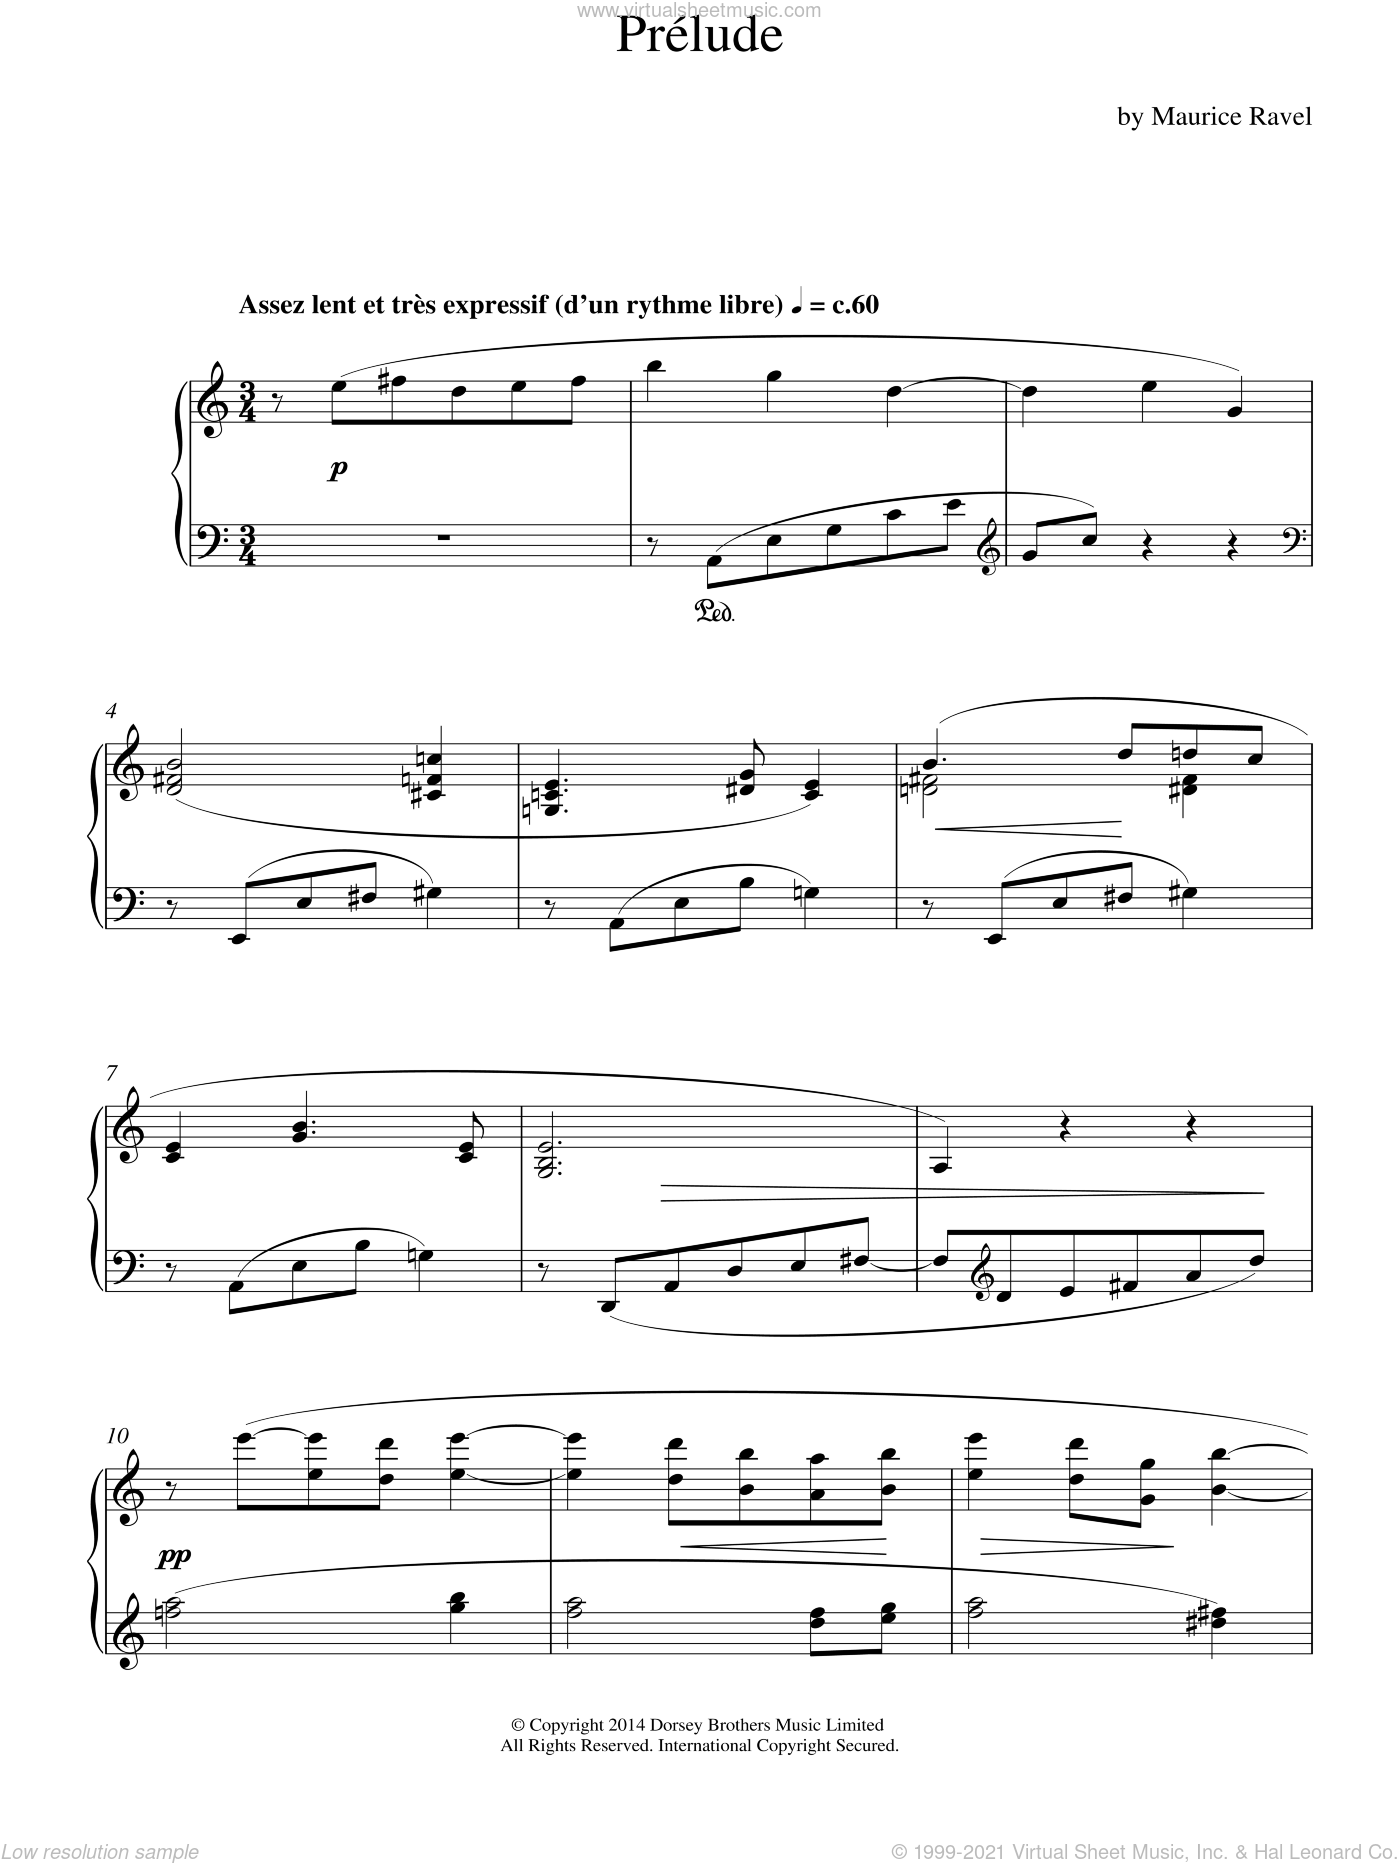 Prelude sheet music for piano solo by Maurice Ravel, classical score, intermediate skill level